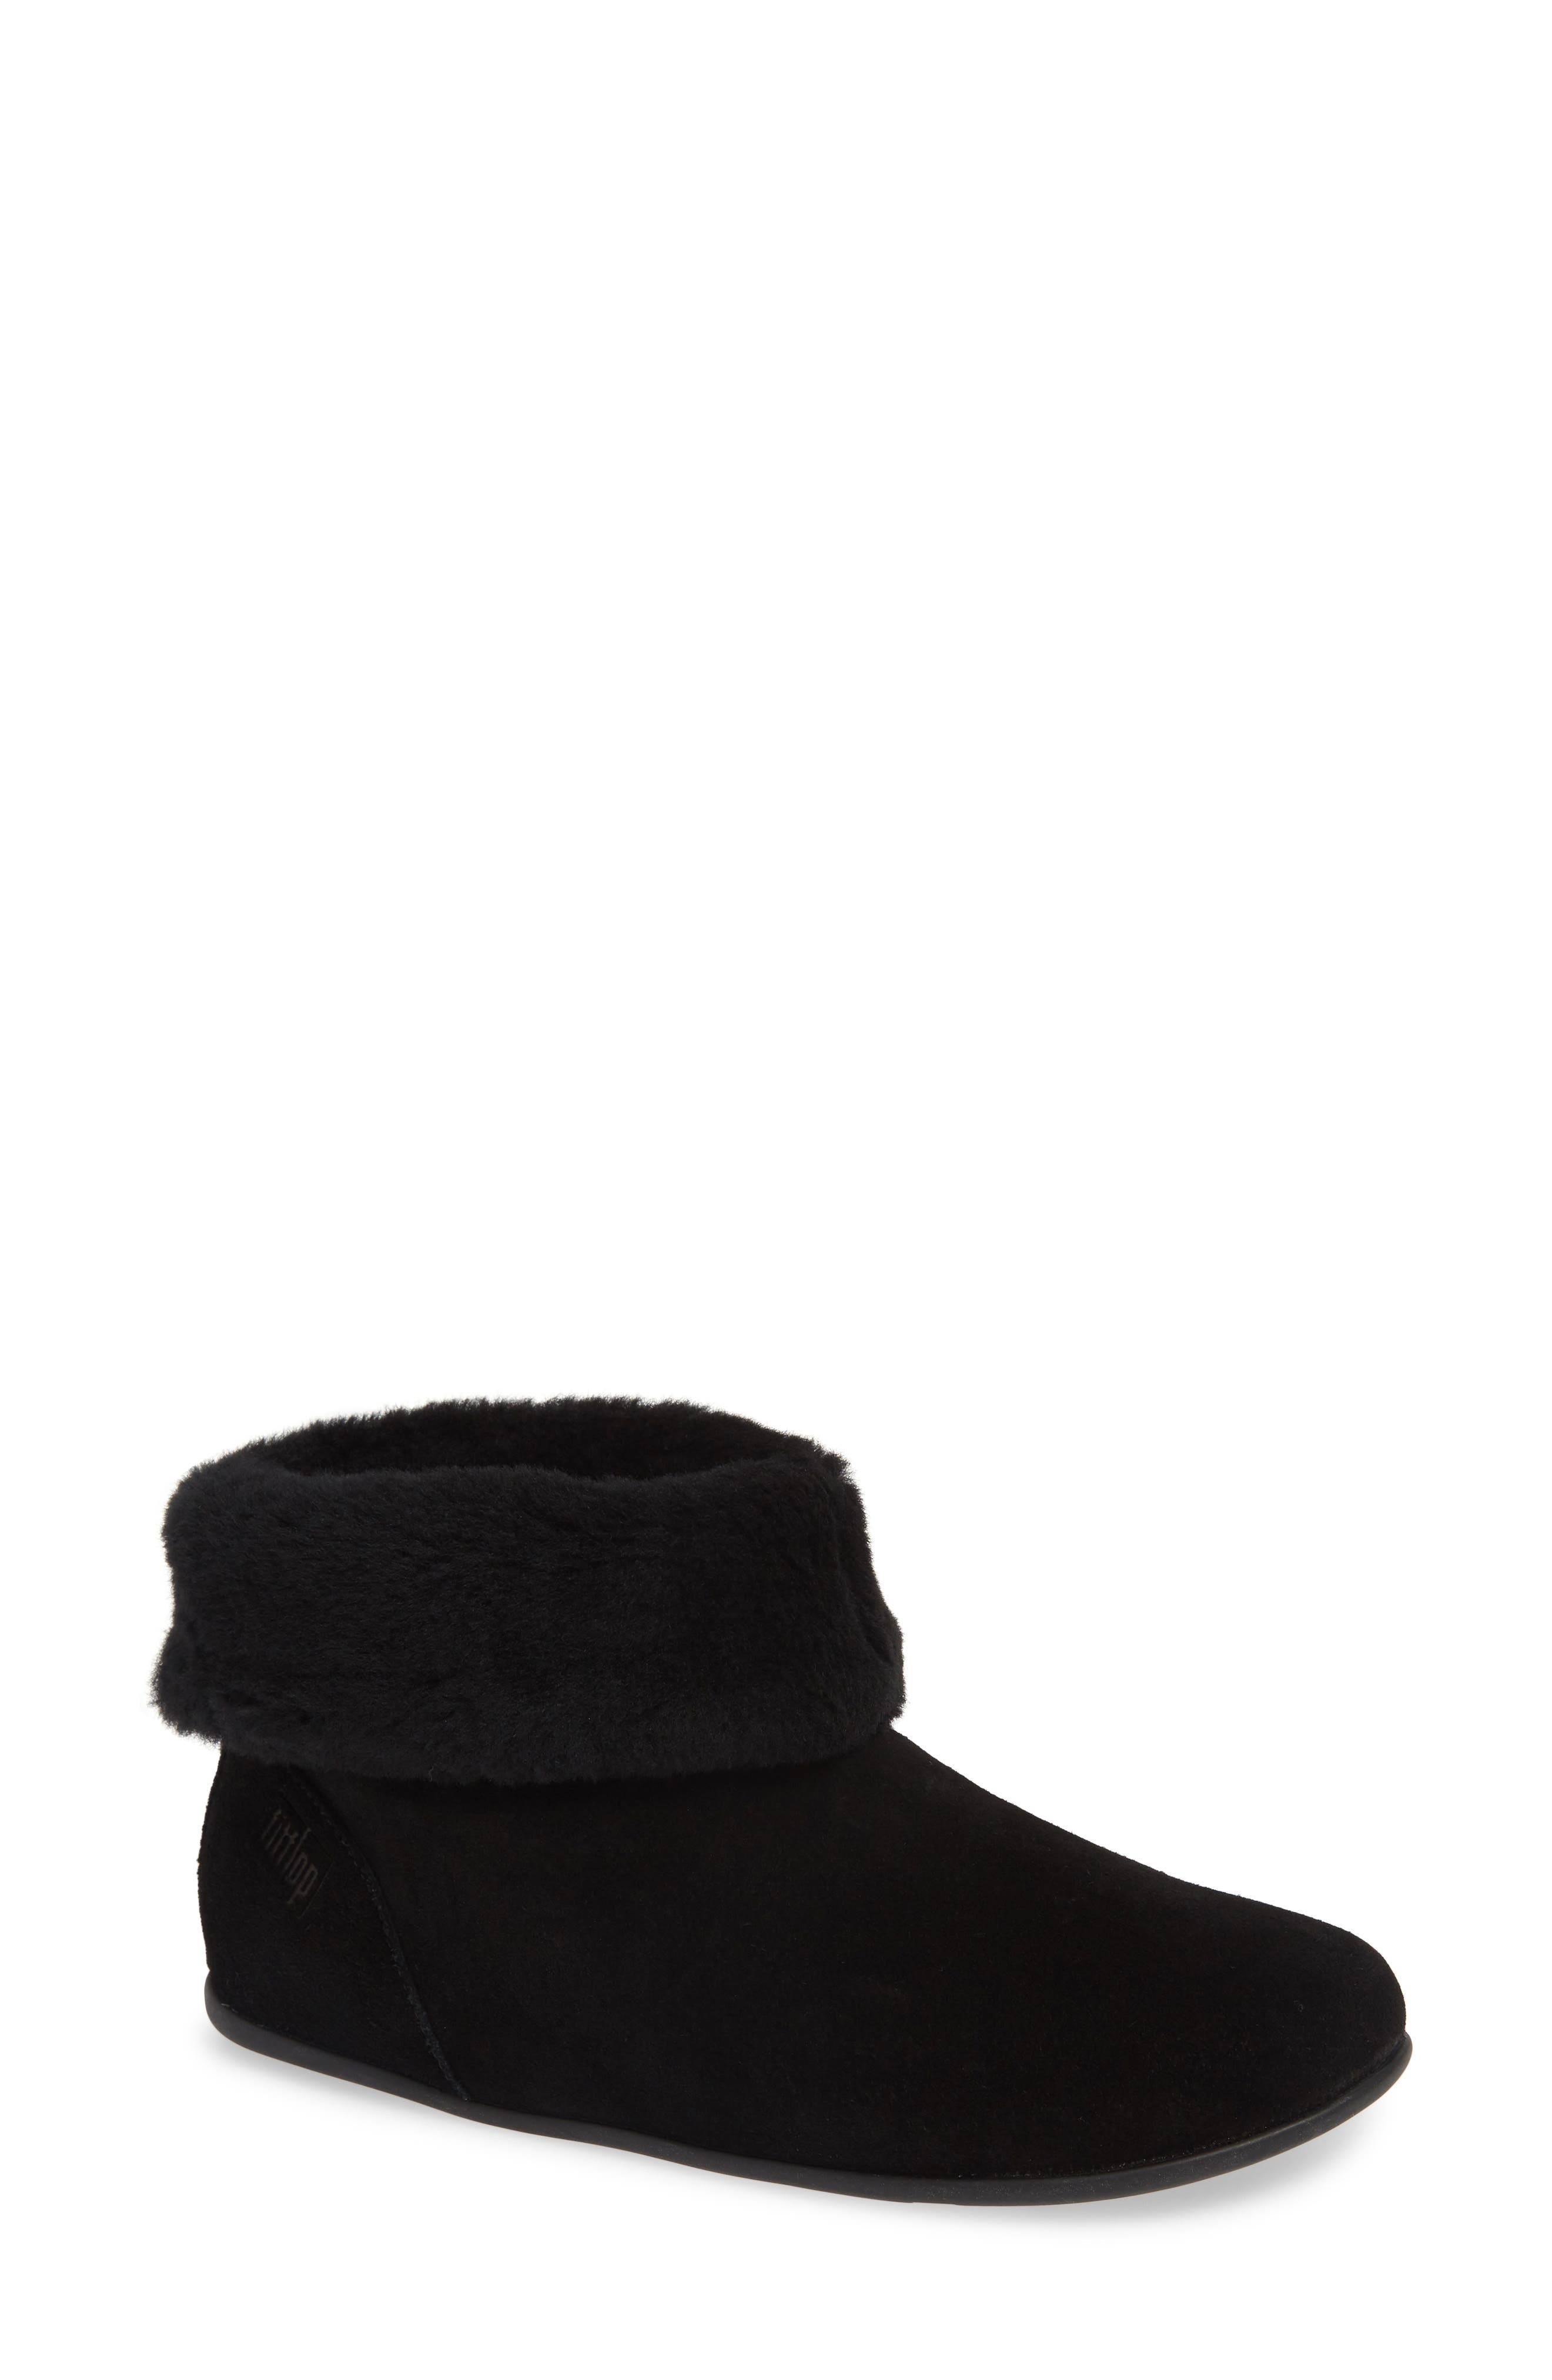 Fitflop Sarah Genuine Shearling Trim Bootie